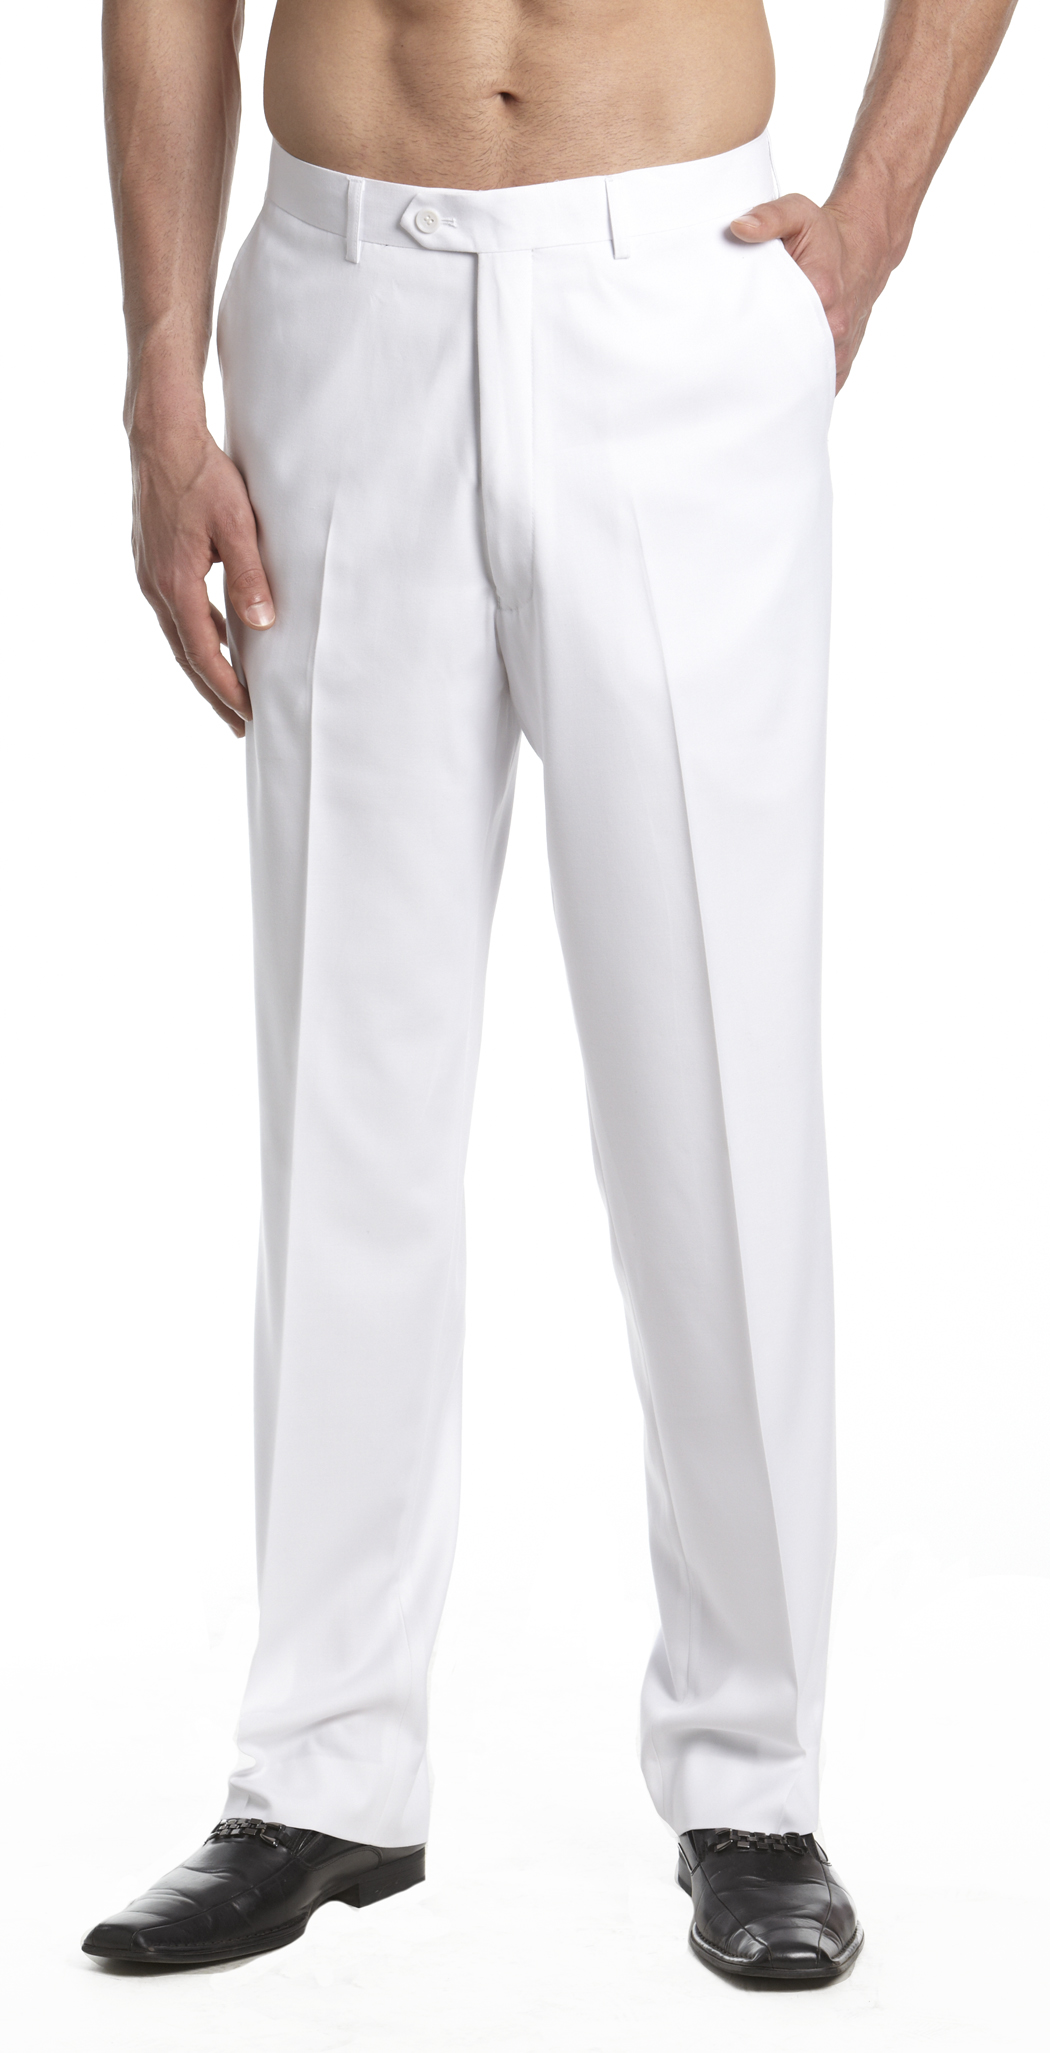 CONCITOR Men's Dress Pants Trousers Flat Front Slack Huge ...